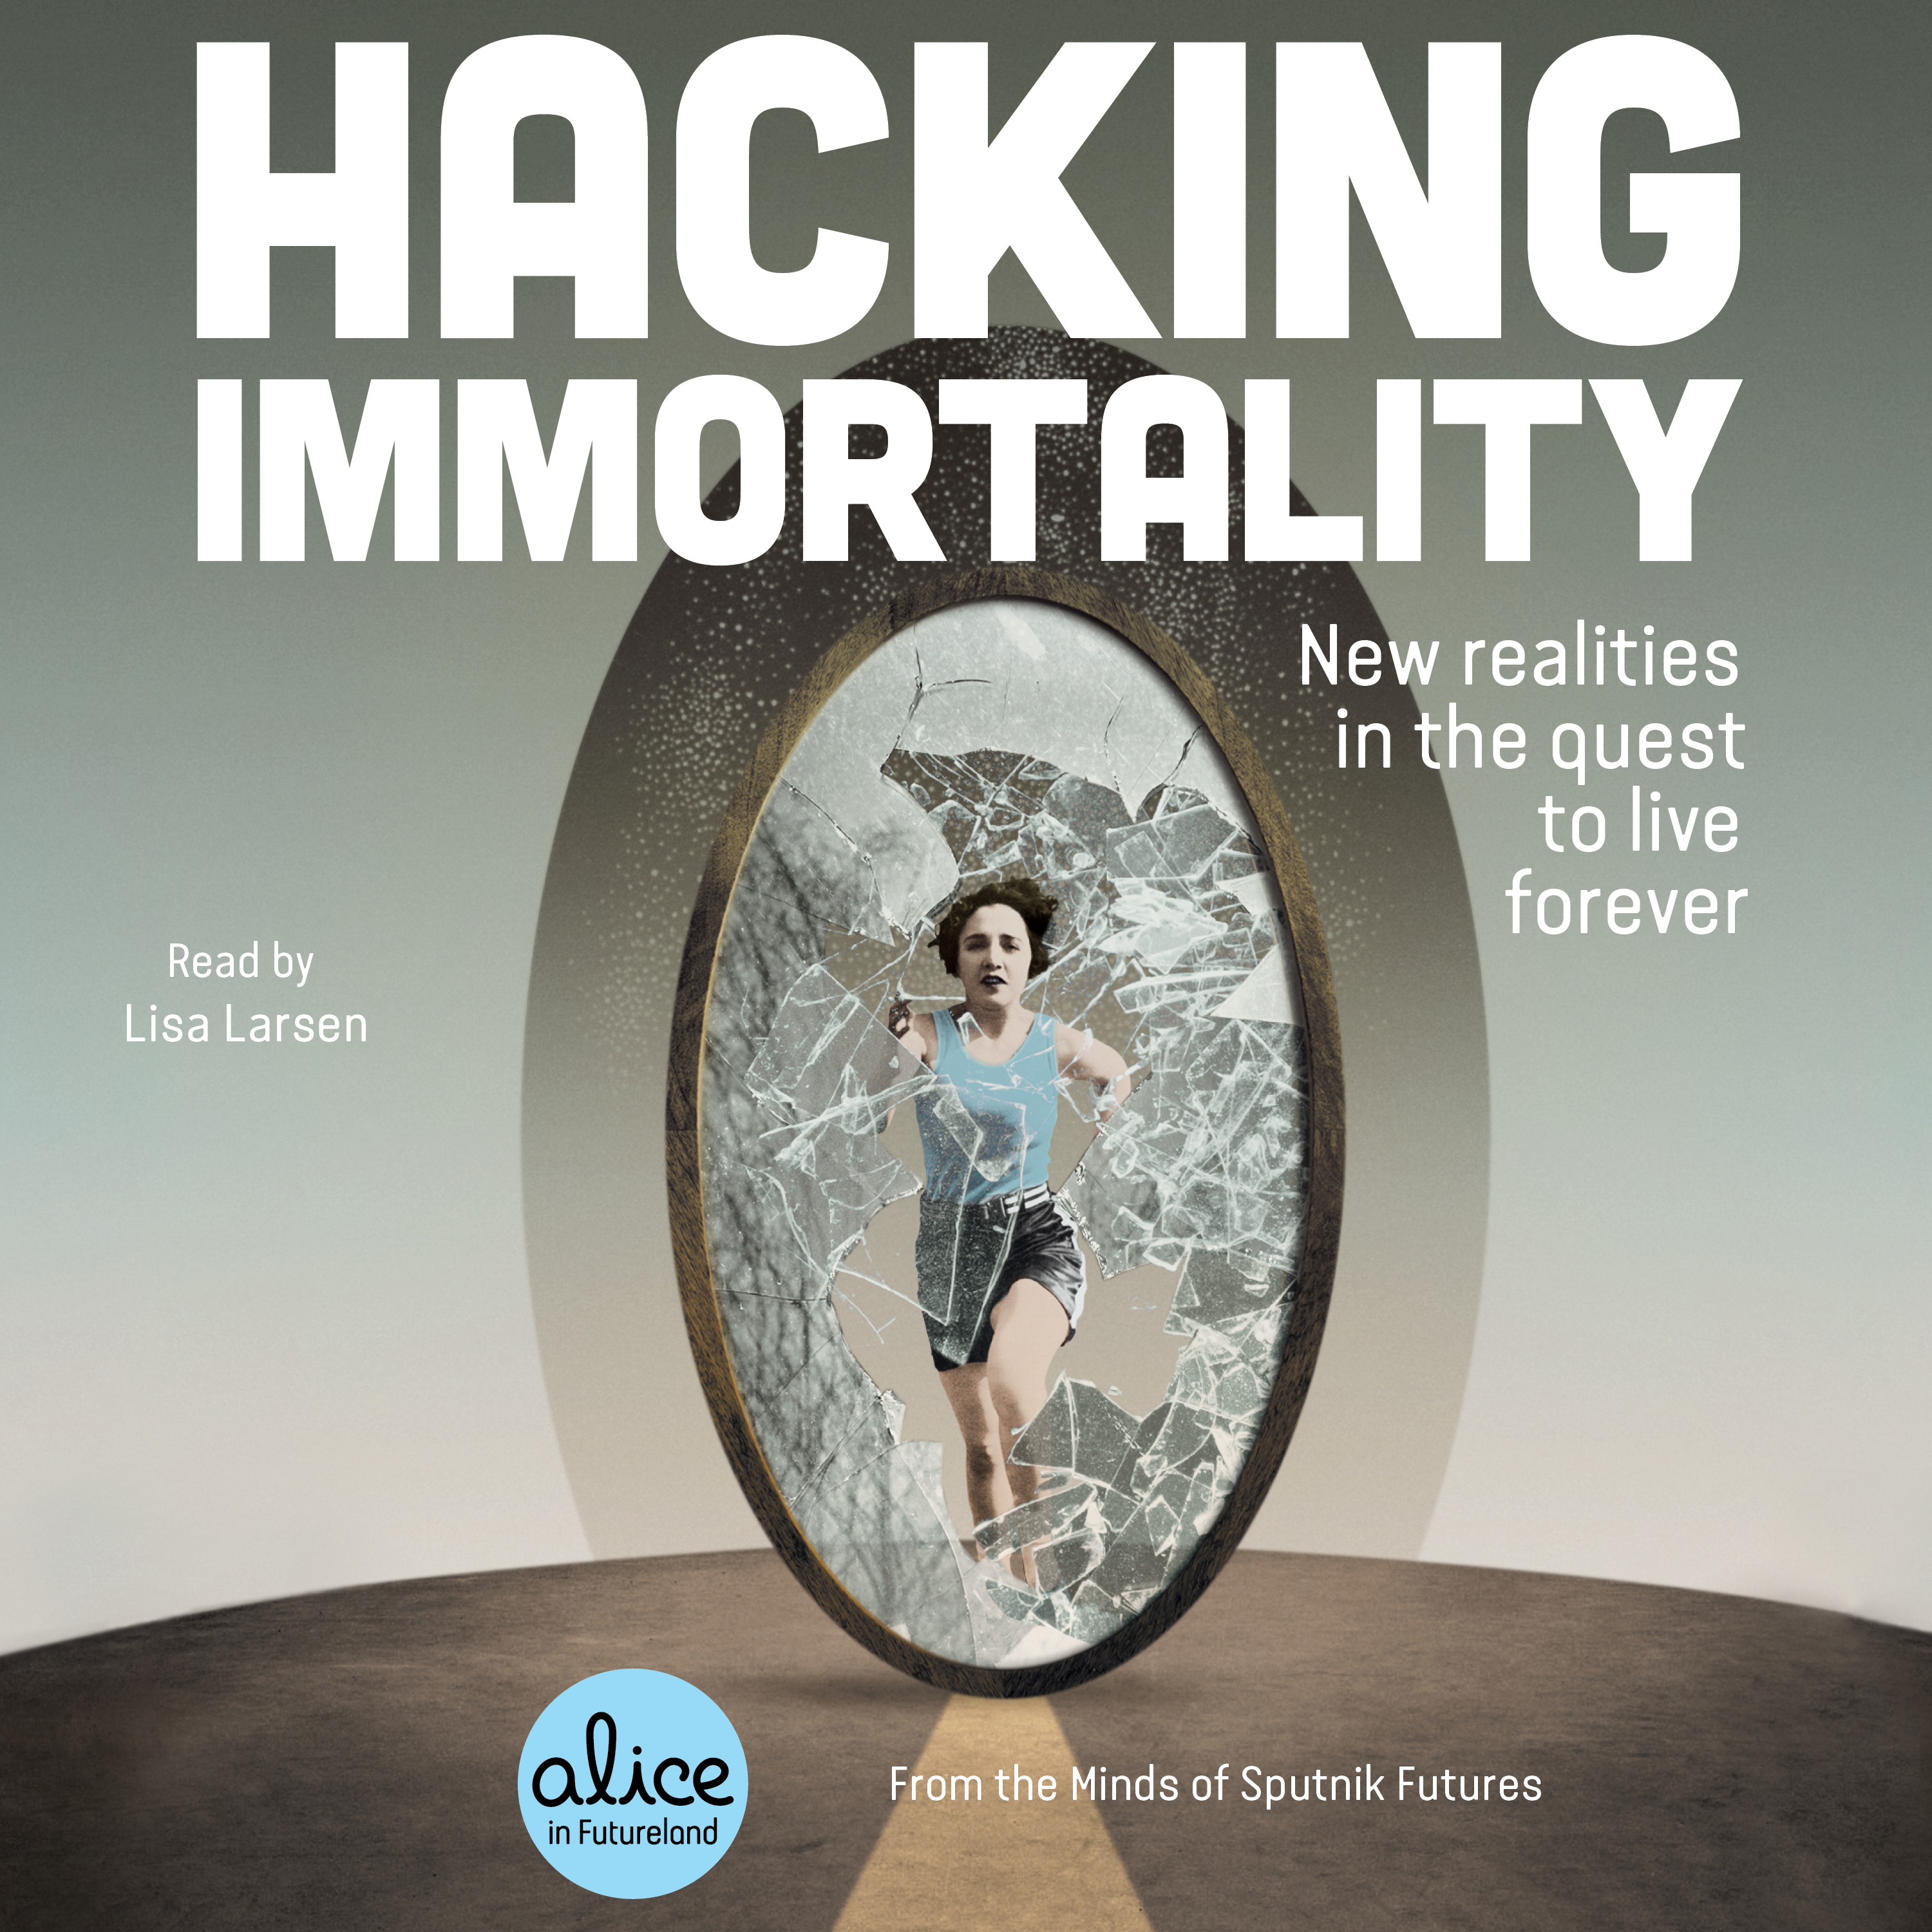 Hacking Immortality